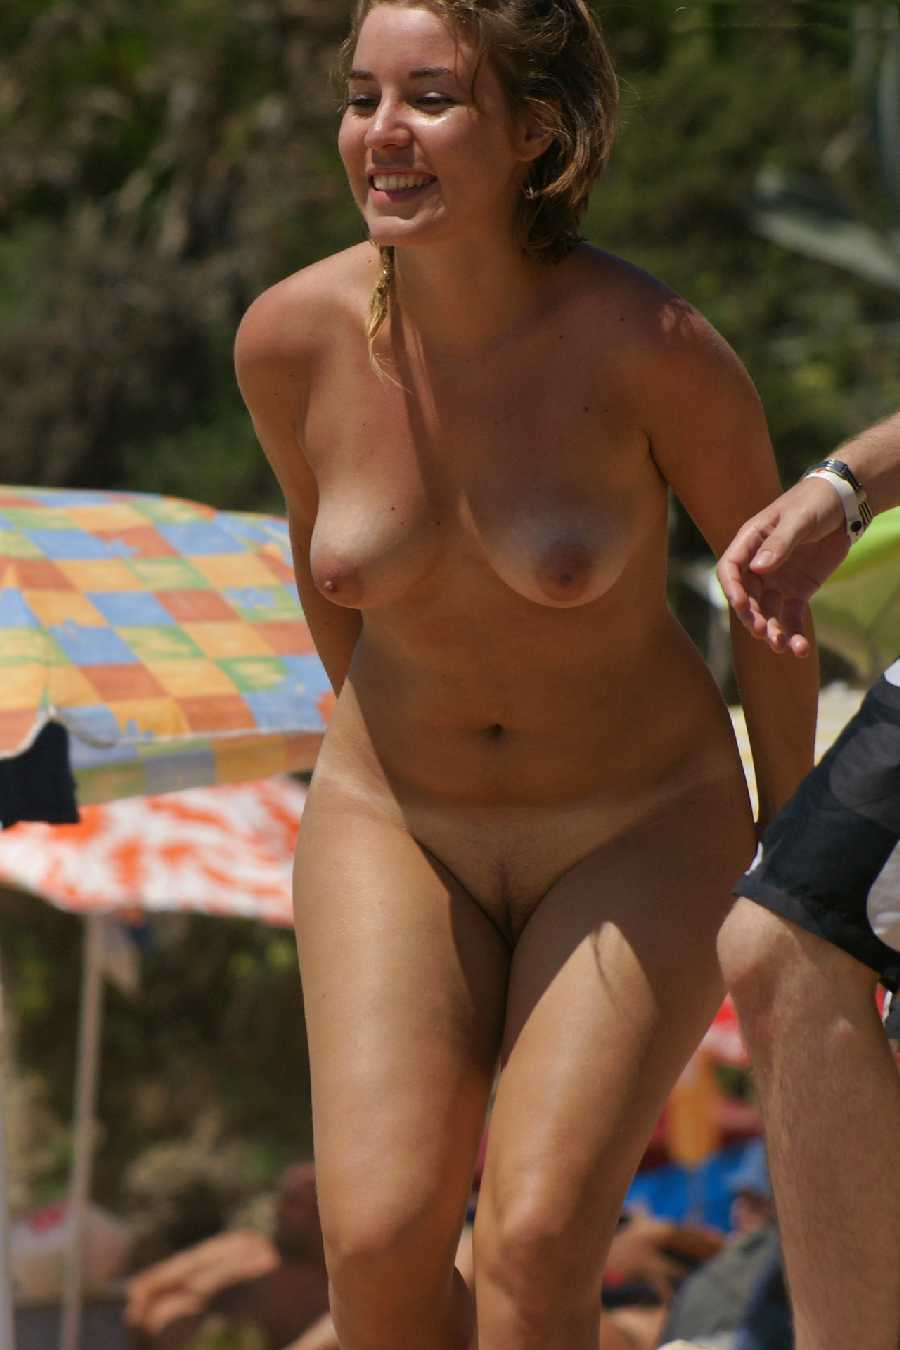 Nude at the Beach - Real Girls Naked